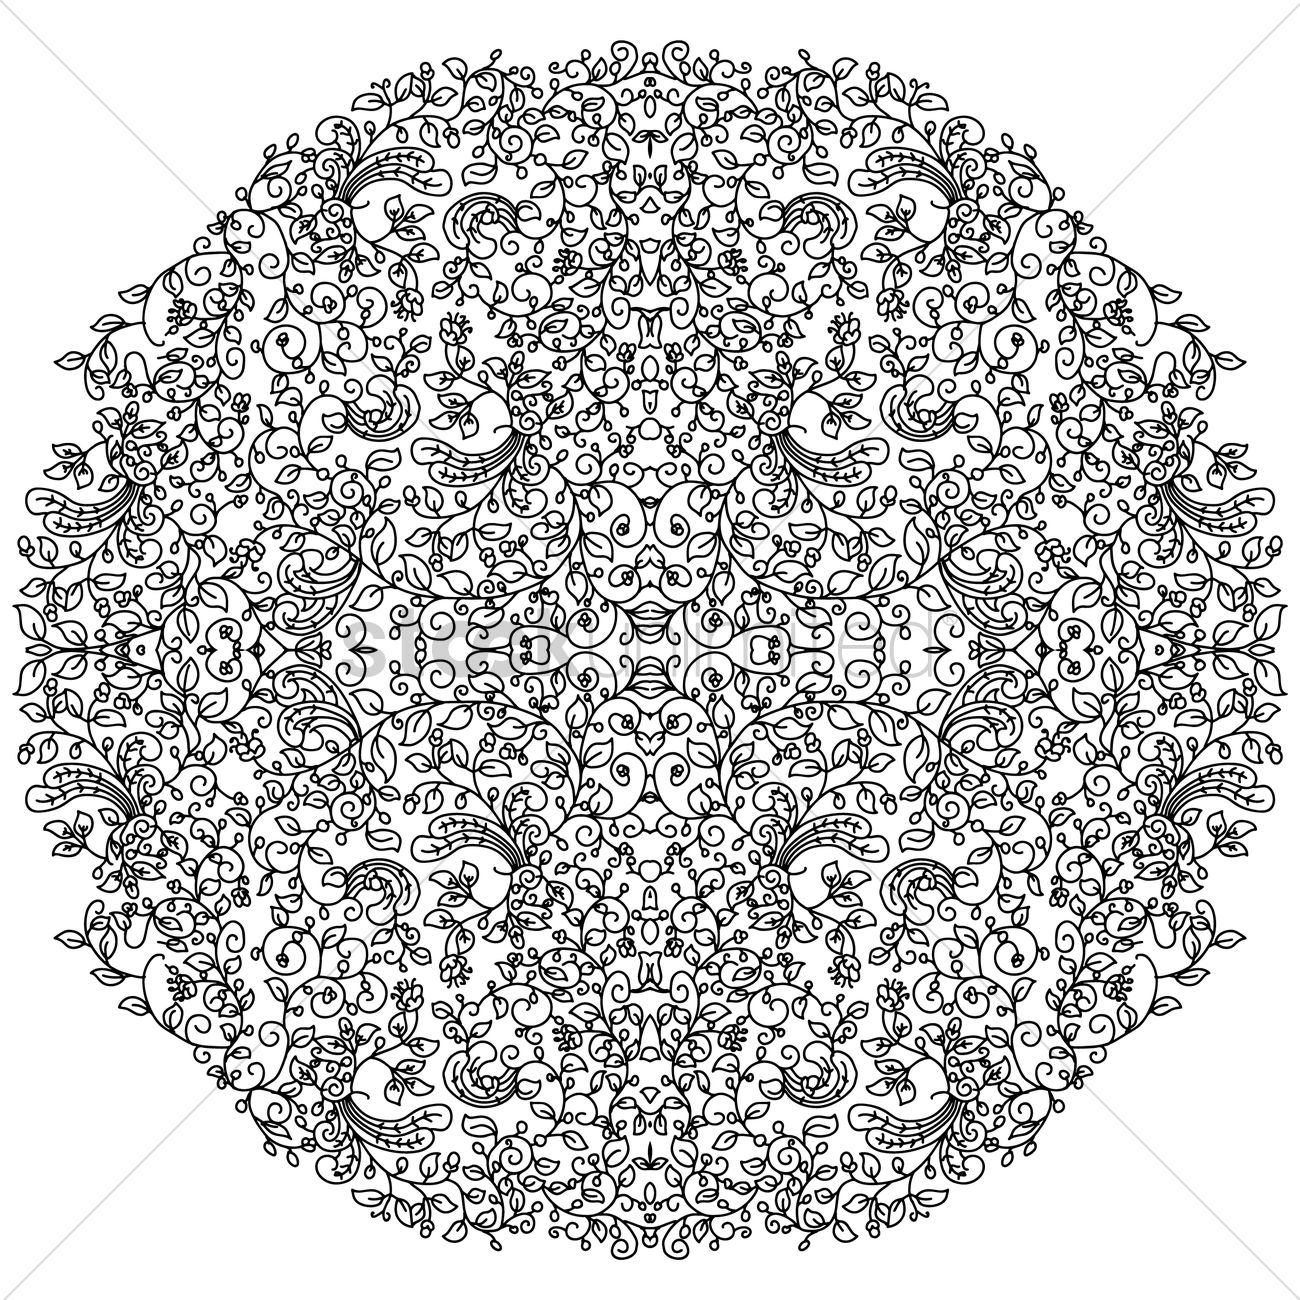 Uncategorized Intricate Pattern abstract intricate pattern design vector image 1959753 graphic